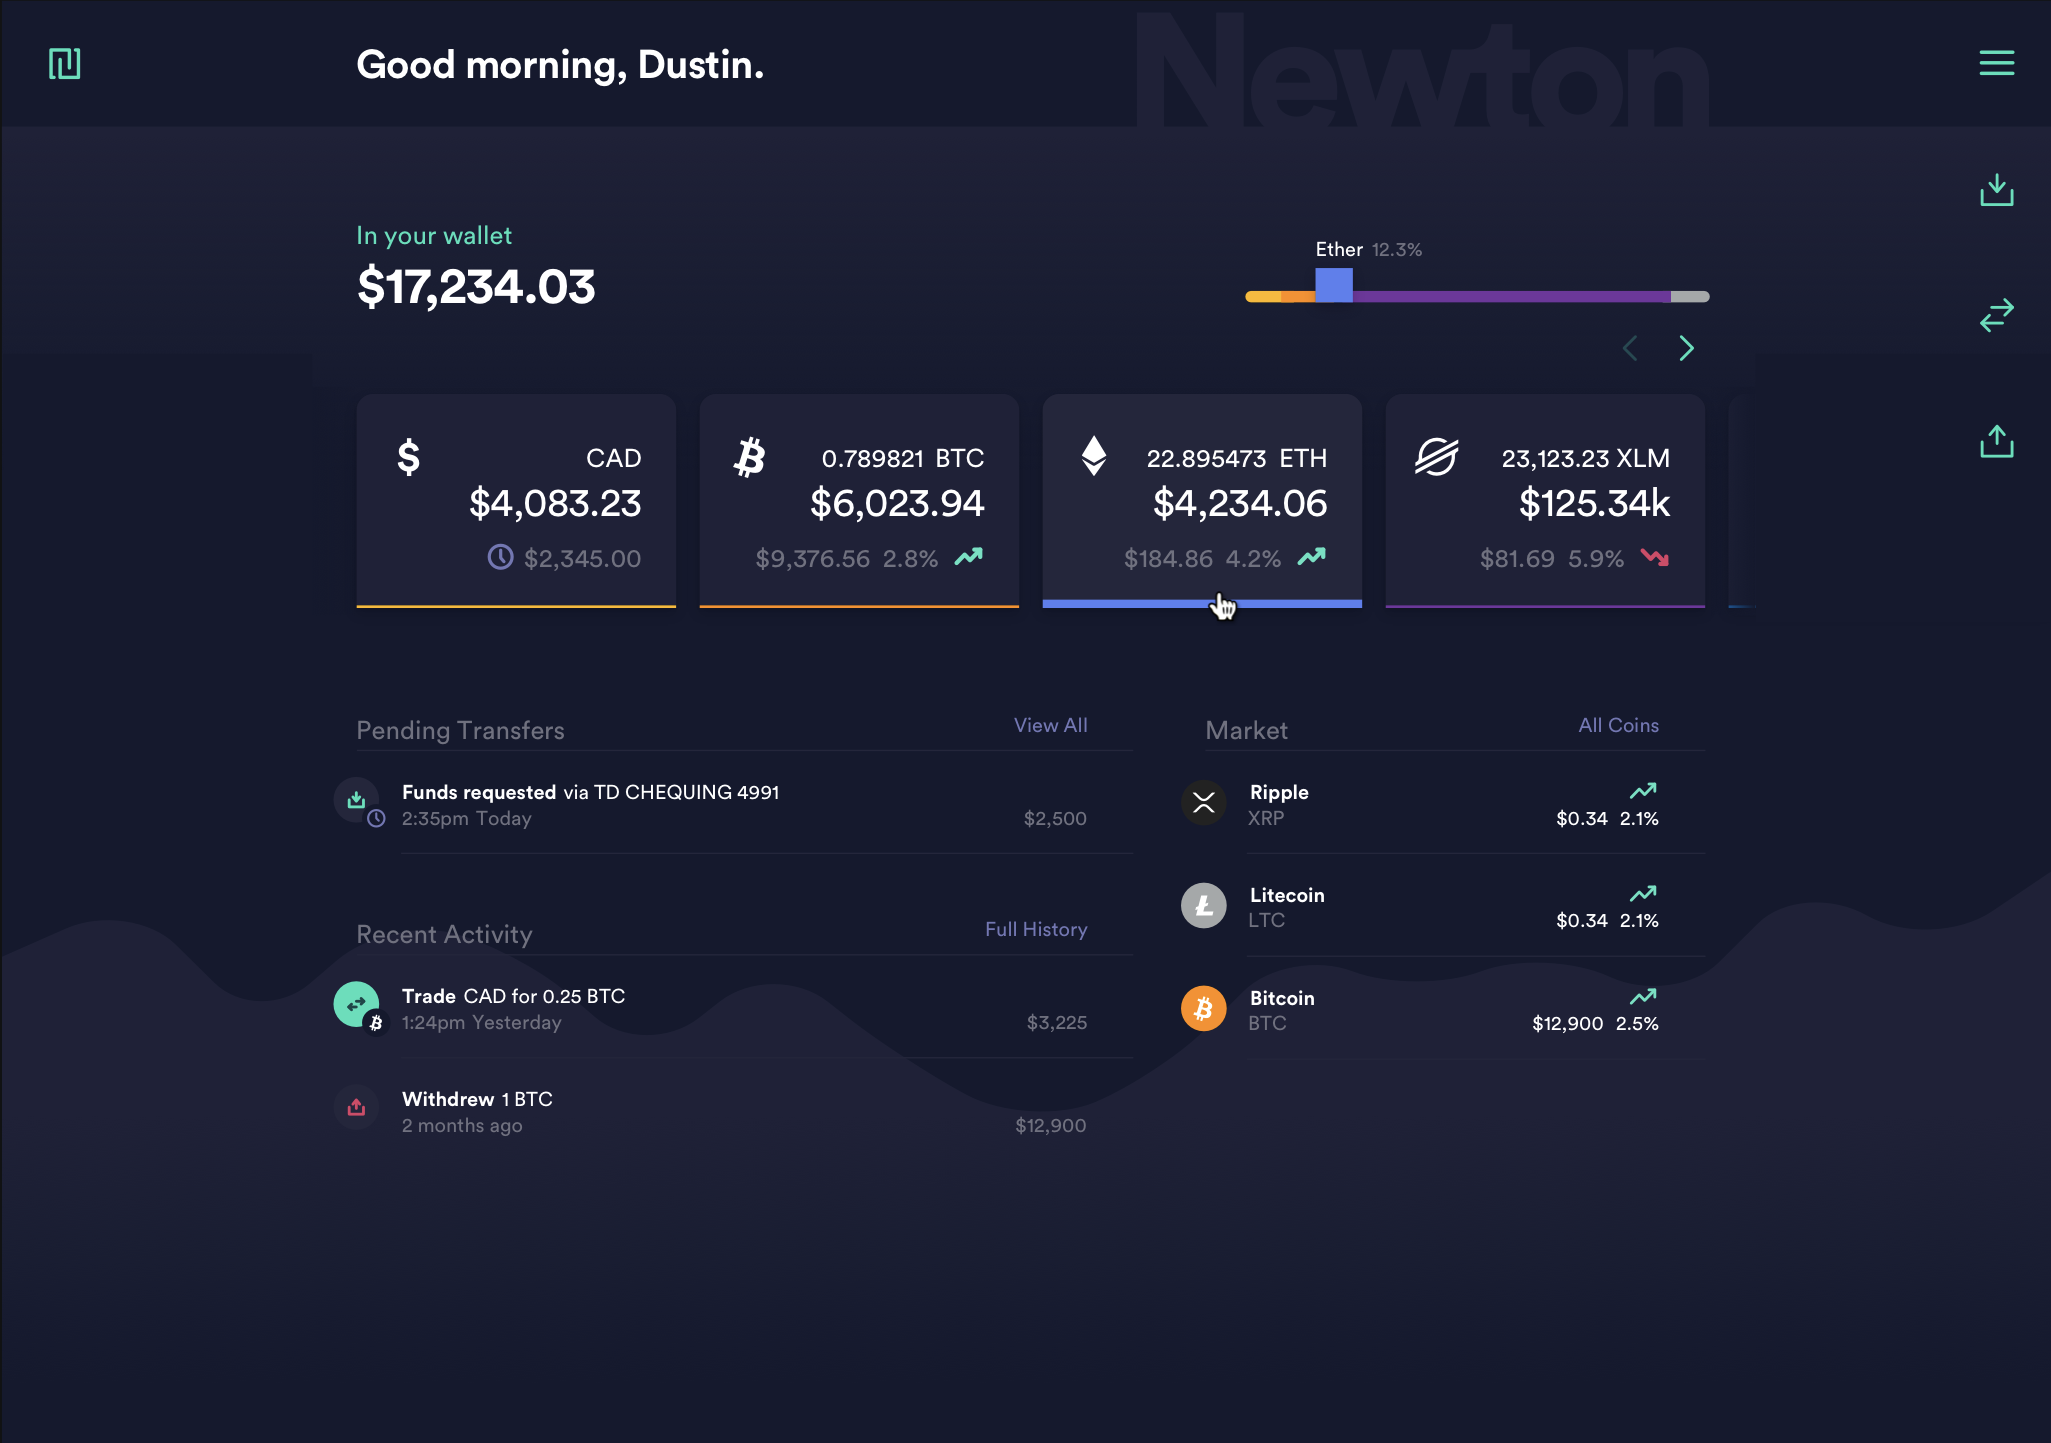 Newton's Web app Dashboard UI